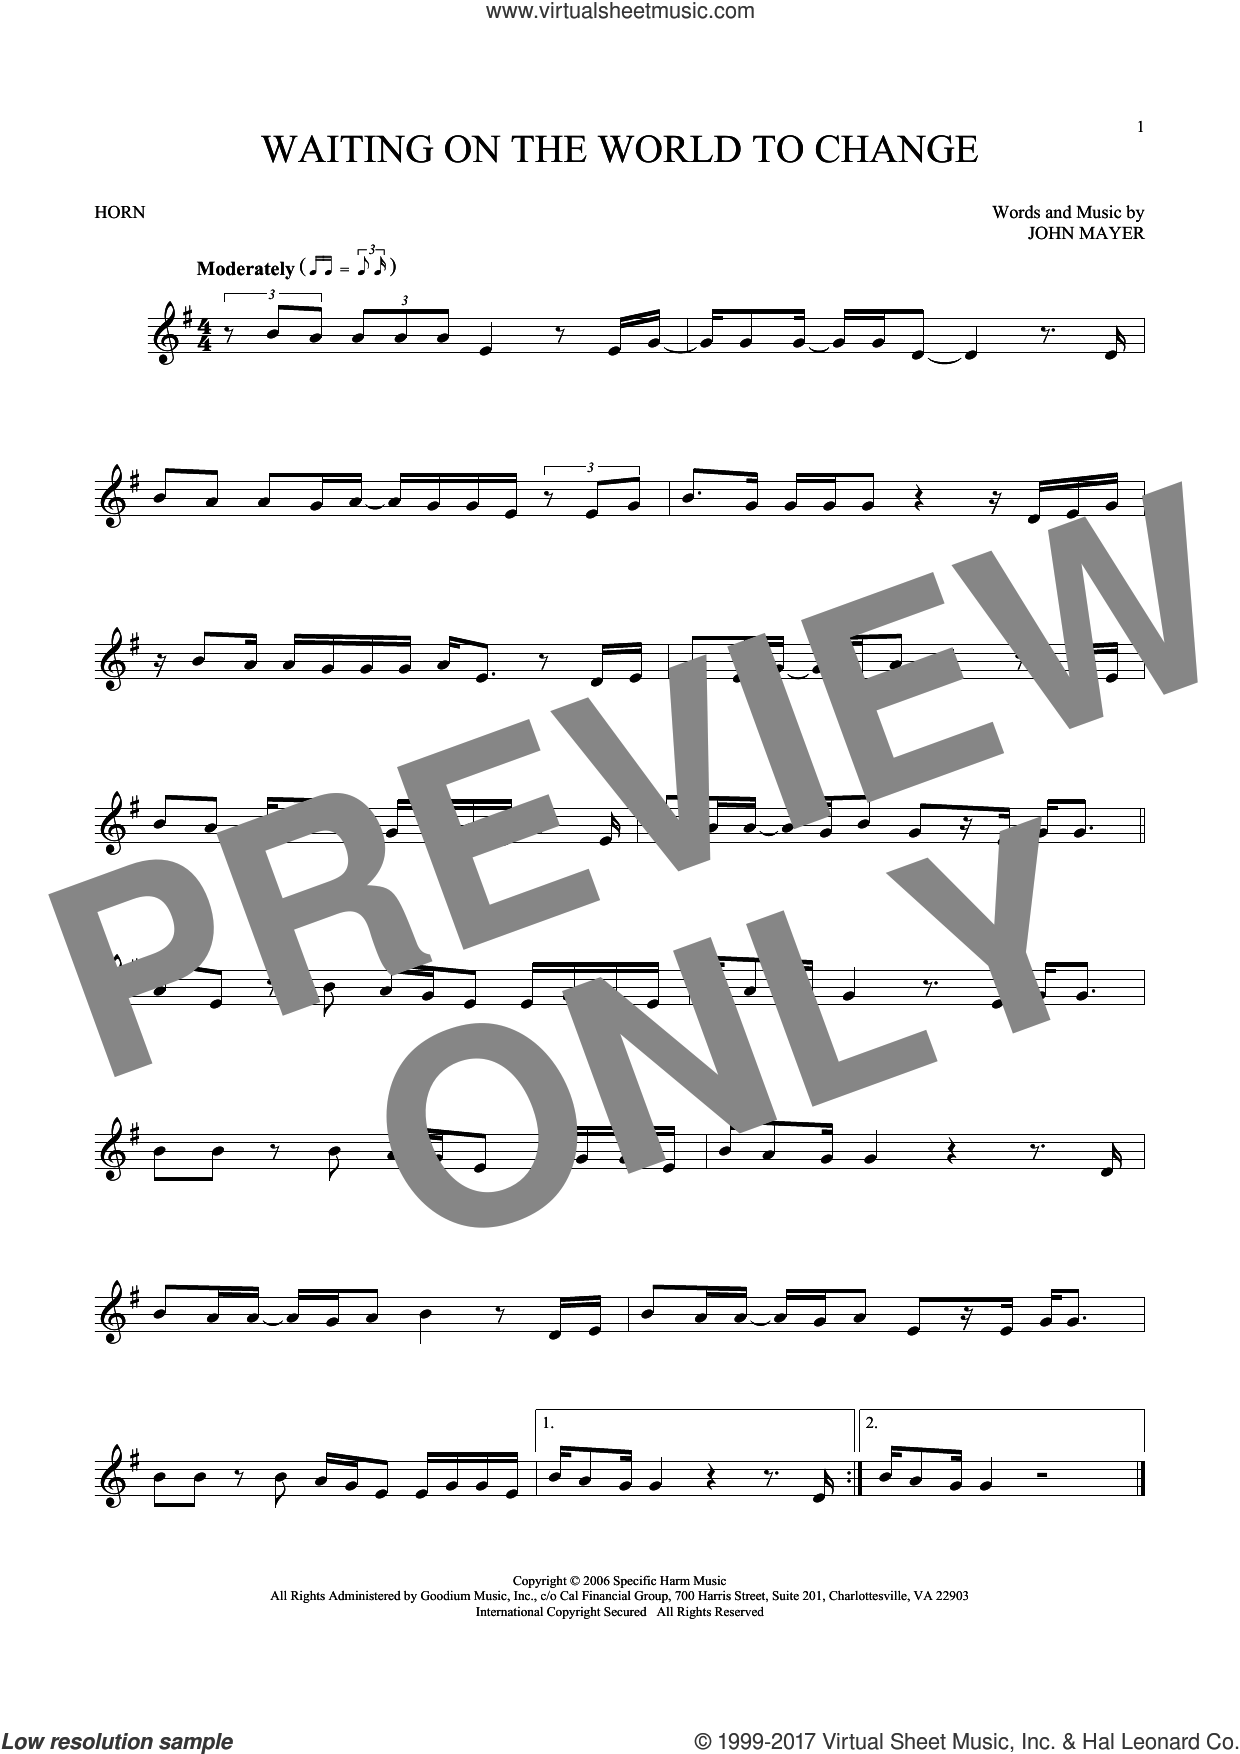 Waiting On The World To Change sheet music for horn solo by John Mayer. Score Image Preview.